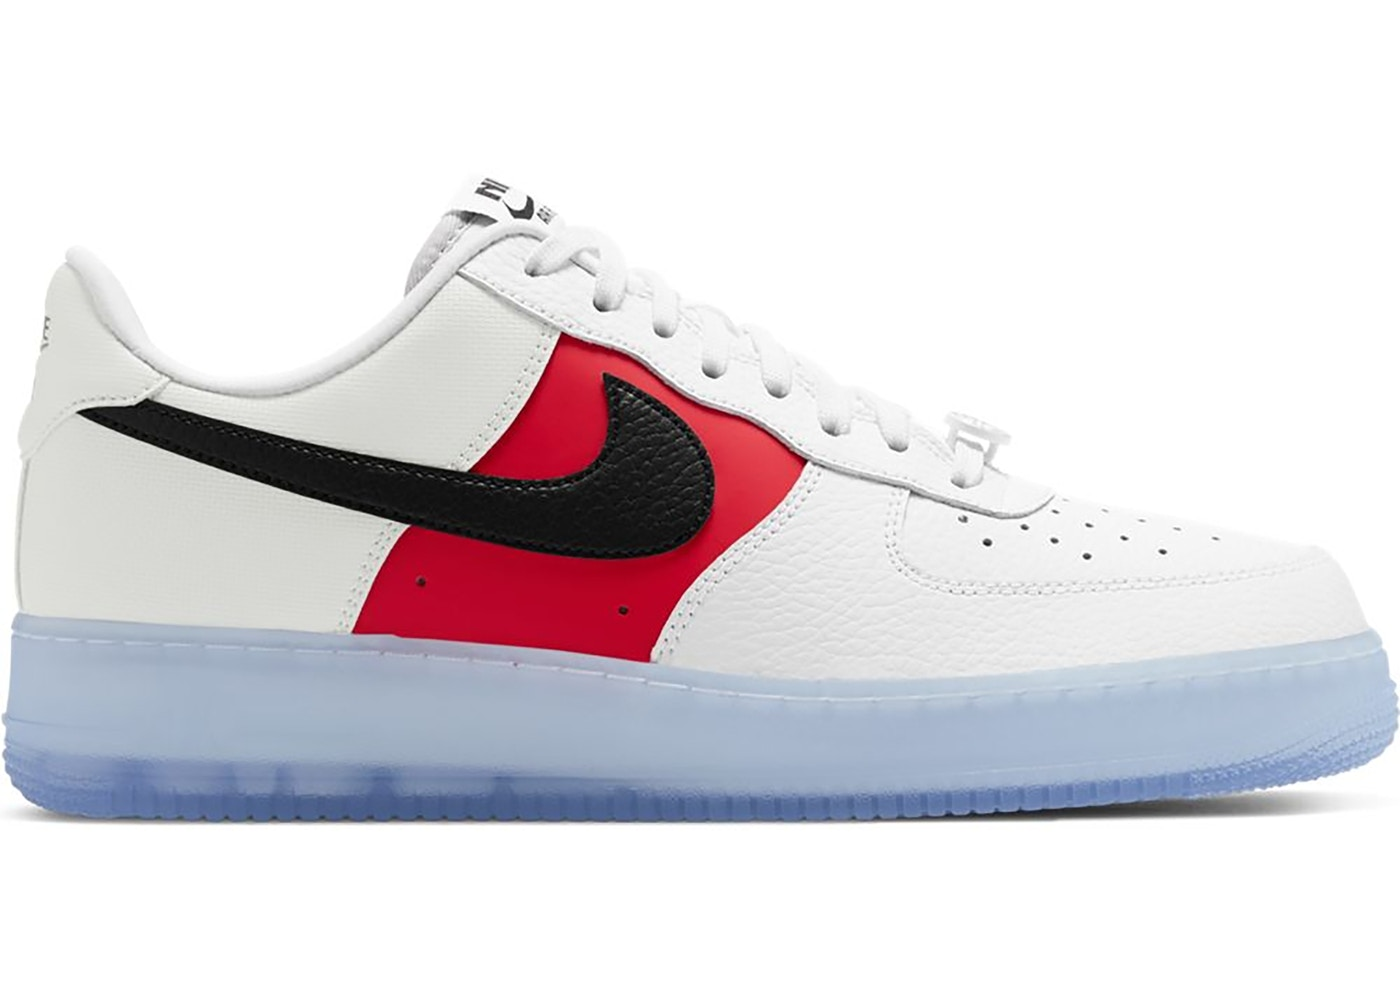 Amperio visto ropa Vaca  Nike Air Force 1 Low White Red Black (Icy Soles) - CT2295-110